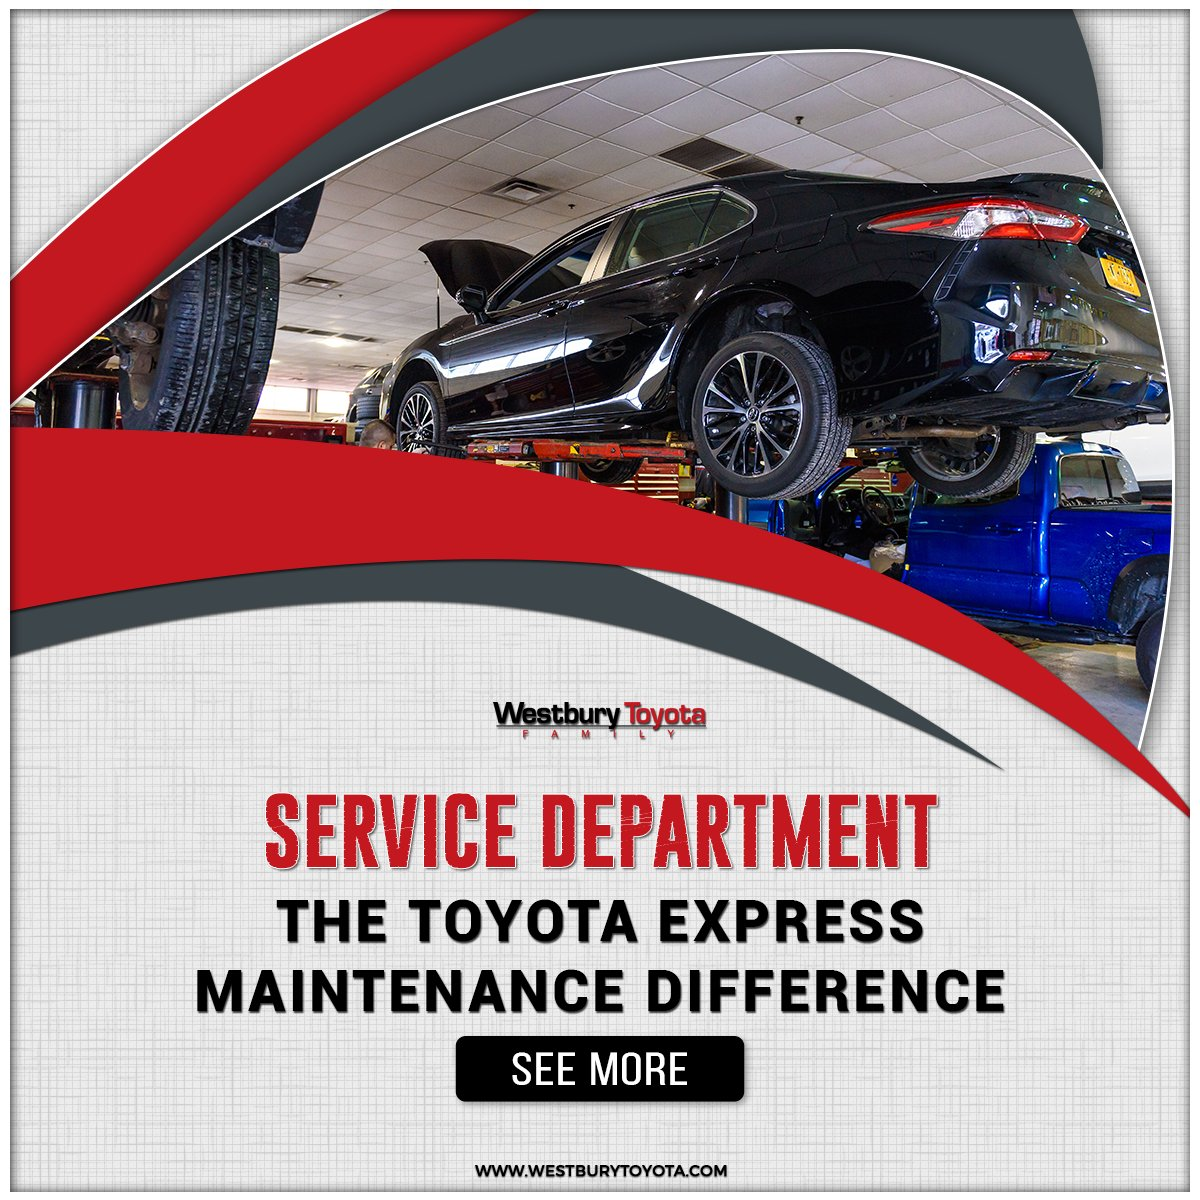 Westbury Toyota On Twitter Schedule Service With In Ny Can Repair Just About Any Make And Model Vehicle The